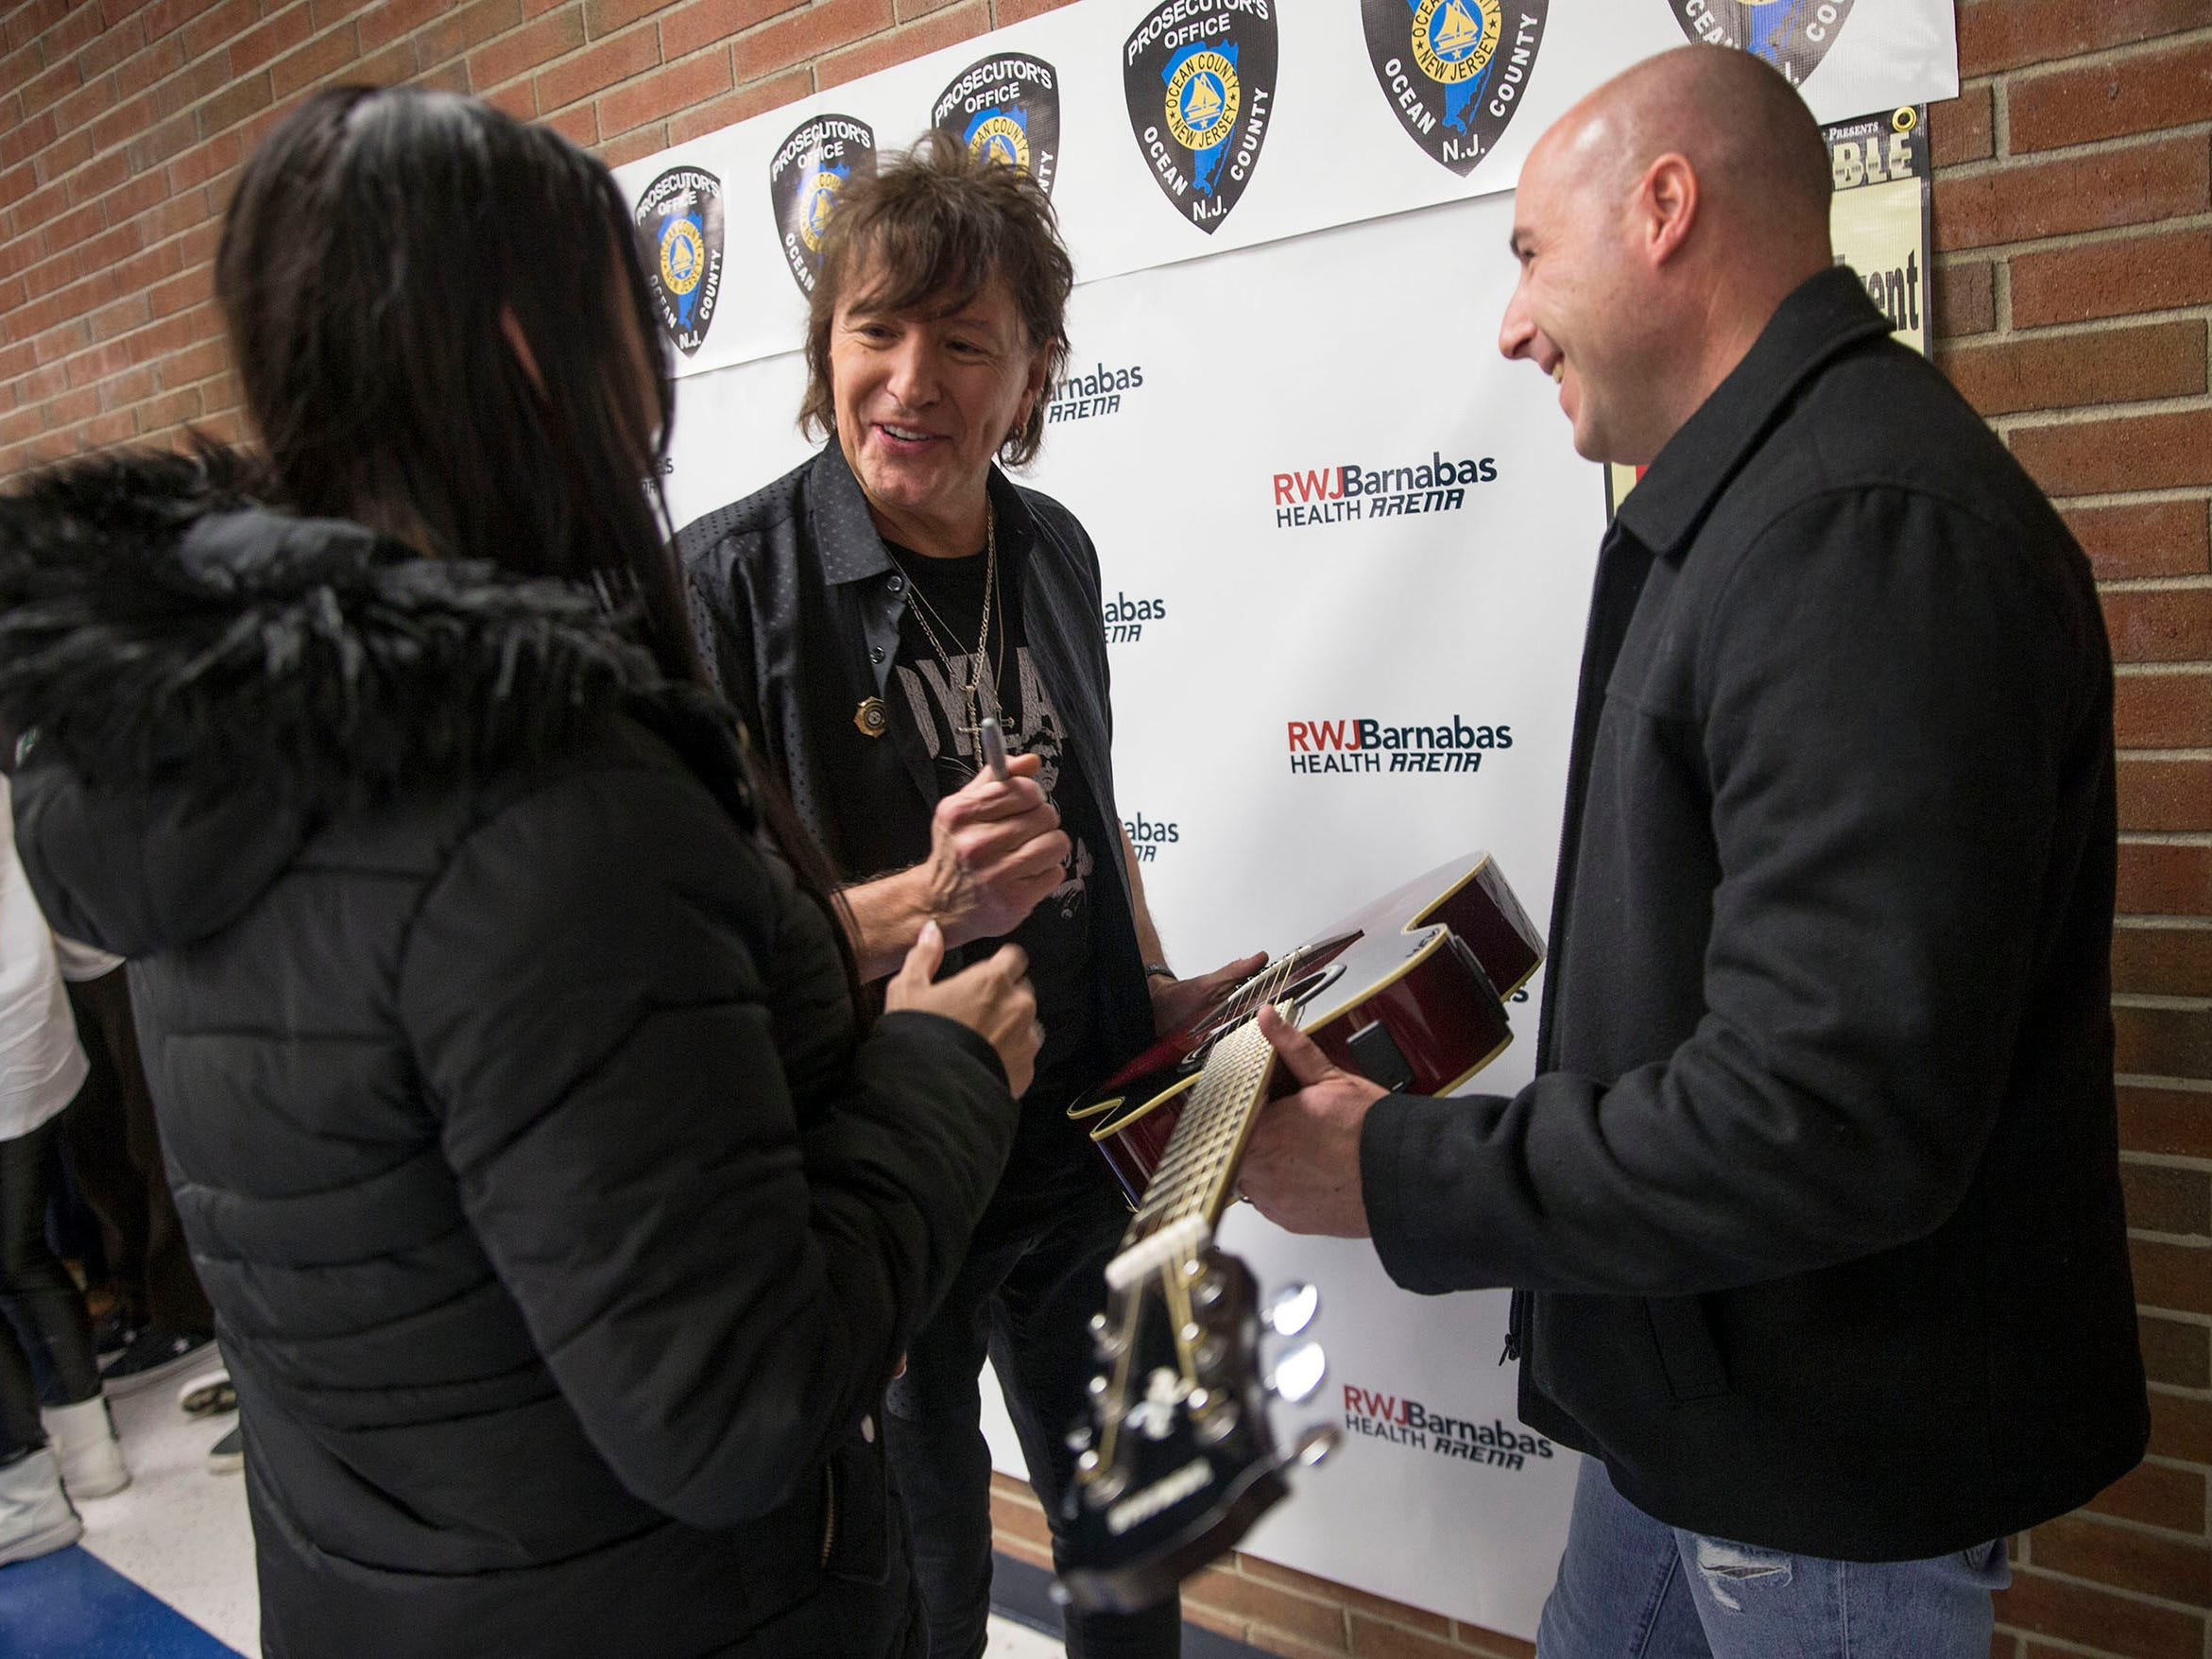 The Ocean County Prosecutor's Office presents Unbreakable, A Forum Against Bullying to bring attention to a problem experienced by many children. The show performed at RWJ Barnabas Health Arena included musician Richie Sambora, baseball player Todd Frazier, and actor Gaten Matarazzo among others.